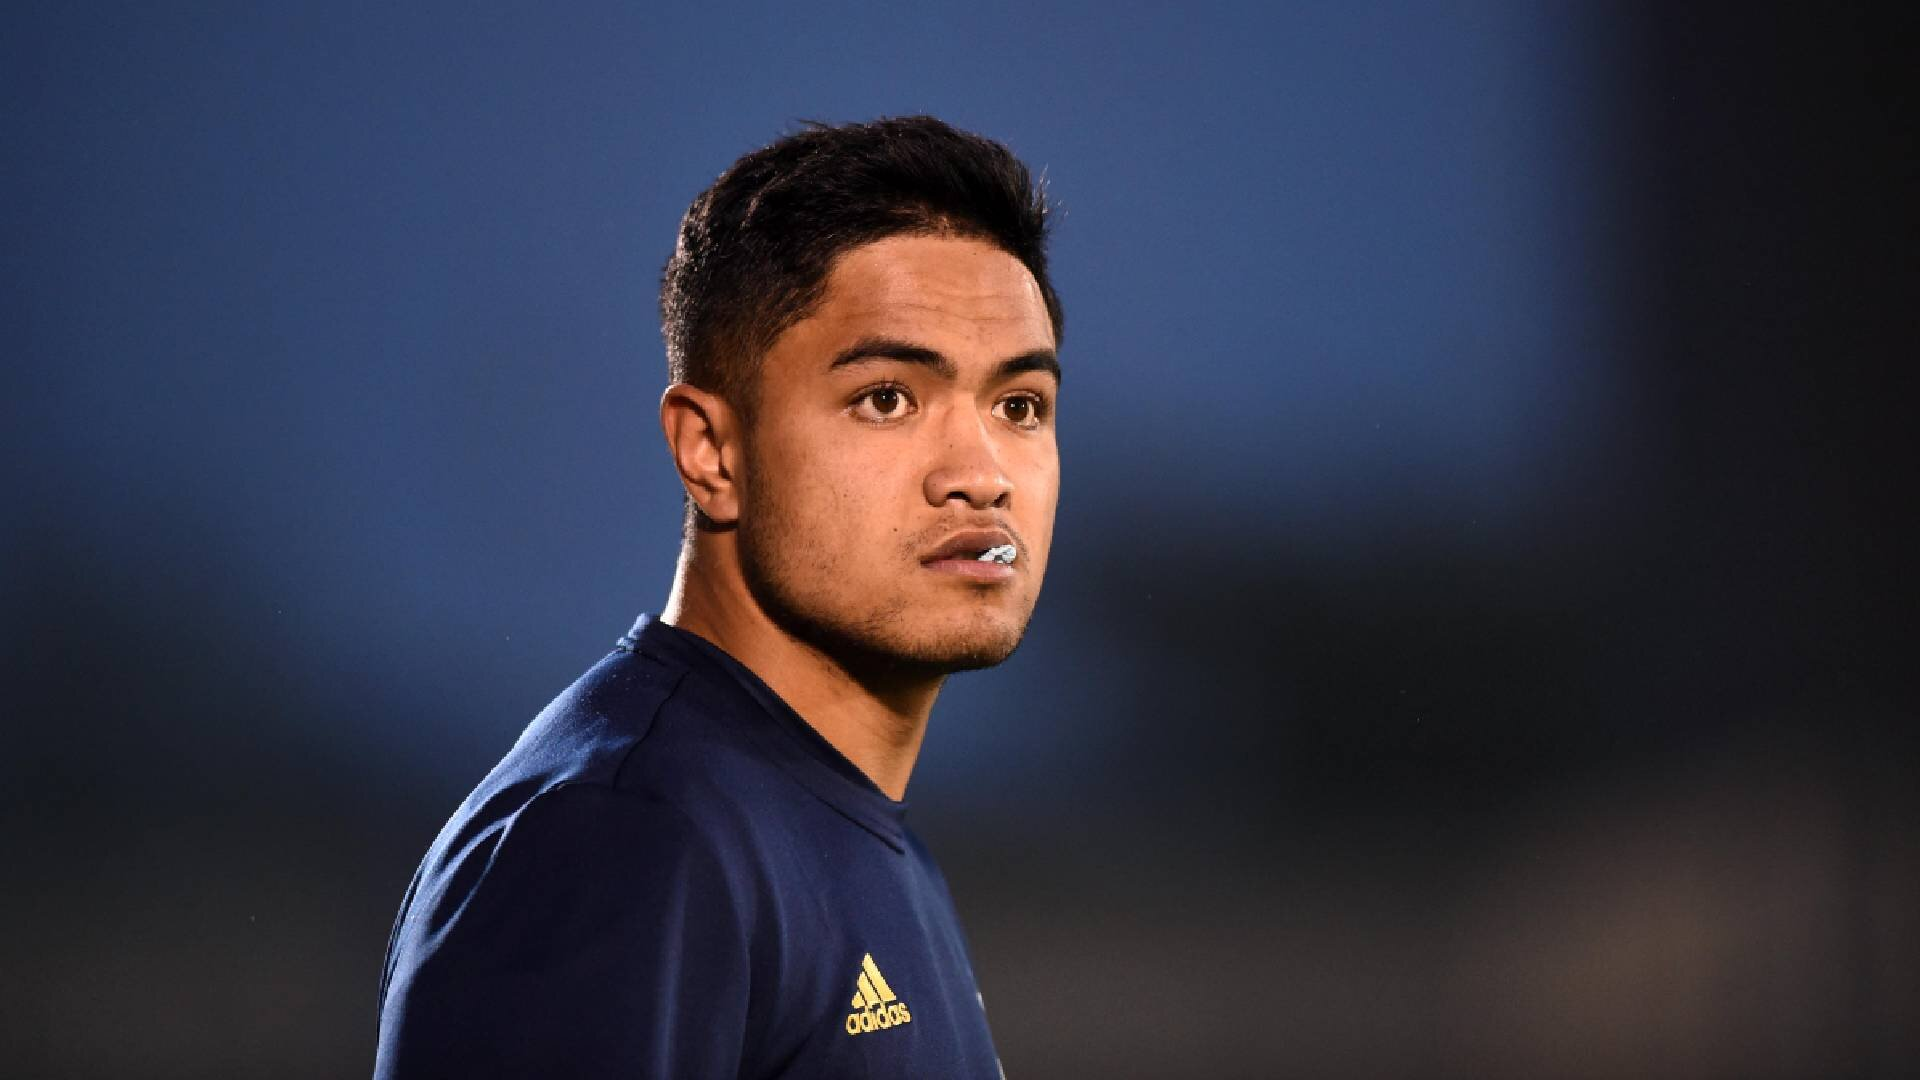 Highlanders star hit with last-minute injury blow ahead of Super Rugby Aotearoa opener against Chiefs